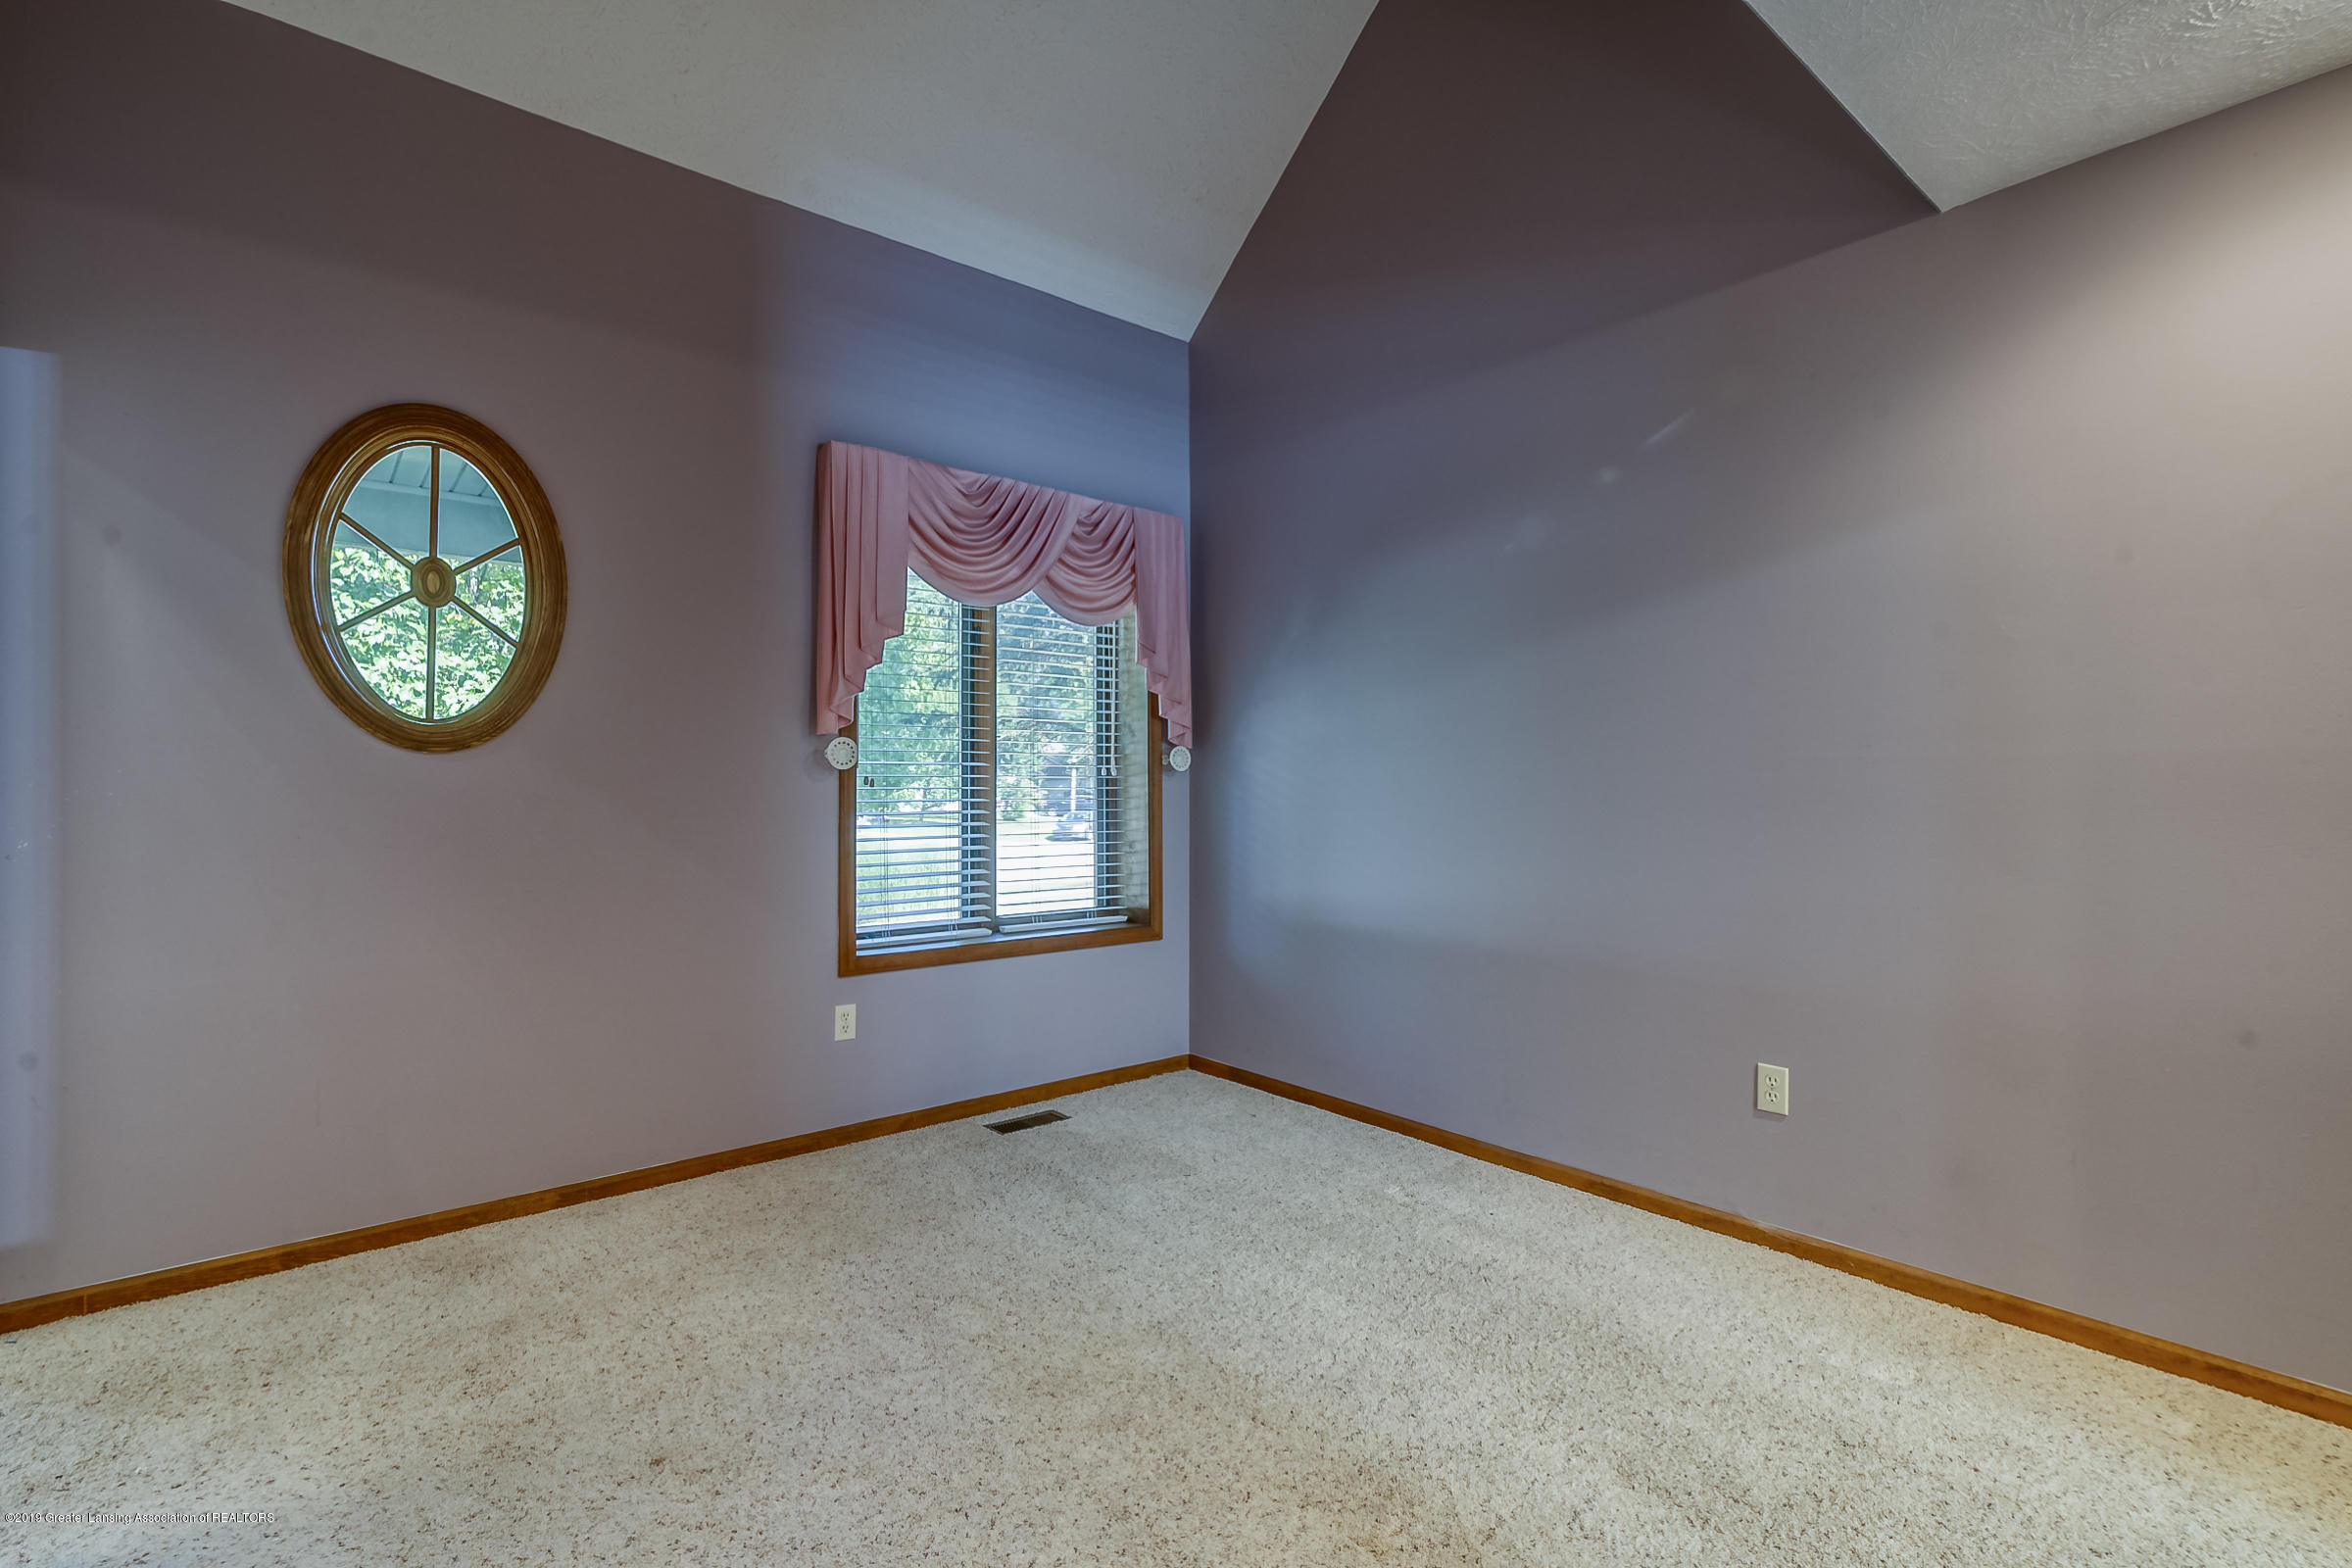 2343 Chisholm Ct - DINING ROOM - 13